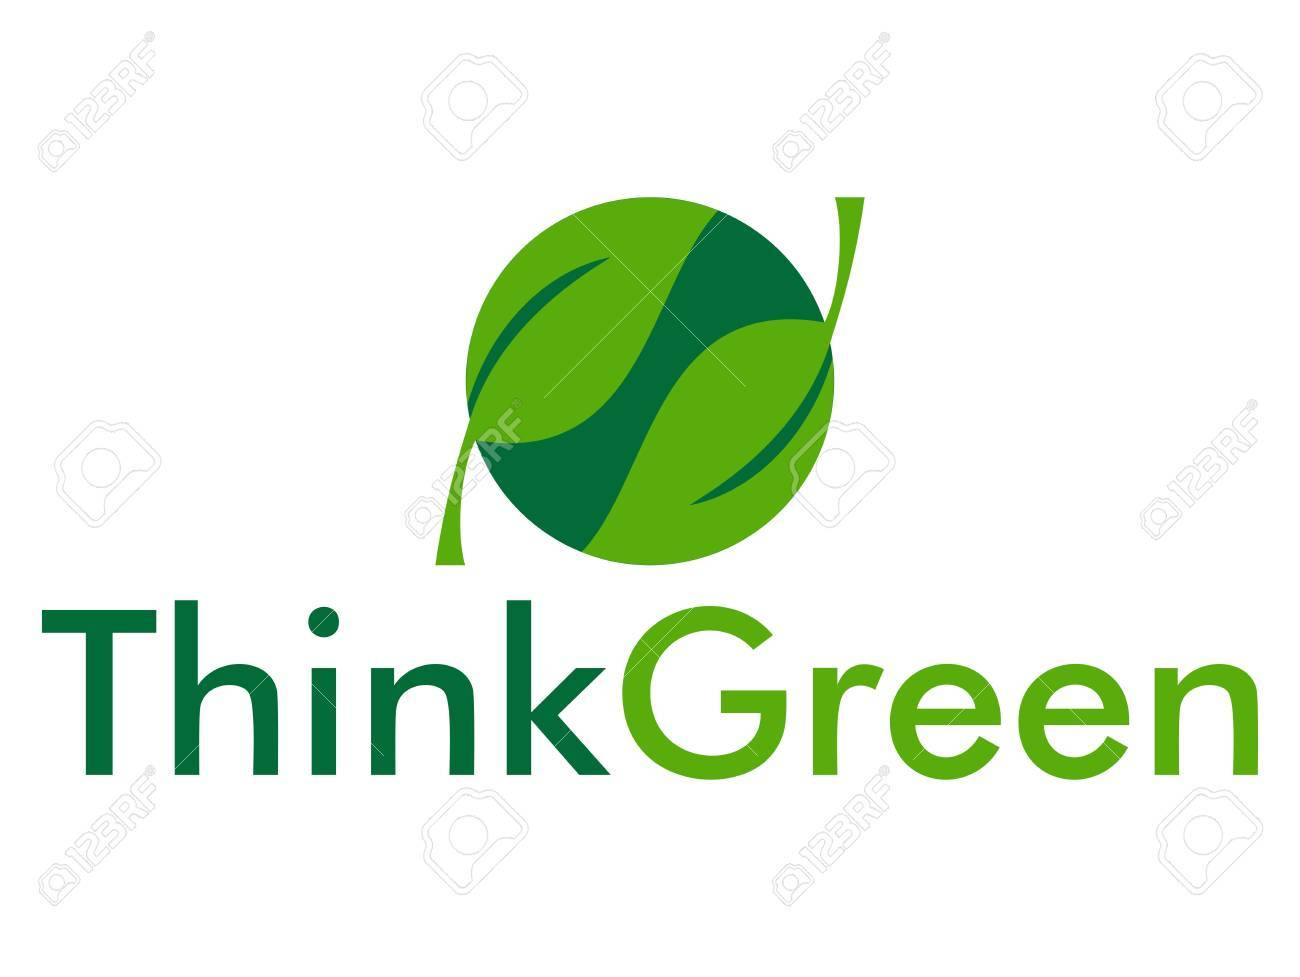 Think green with leaves in circle Stock Vector - 20279079